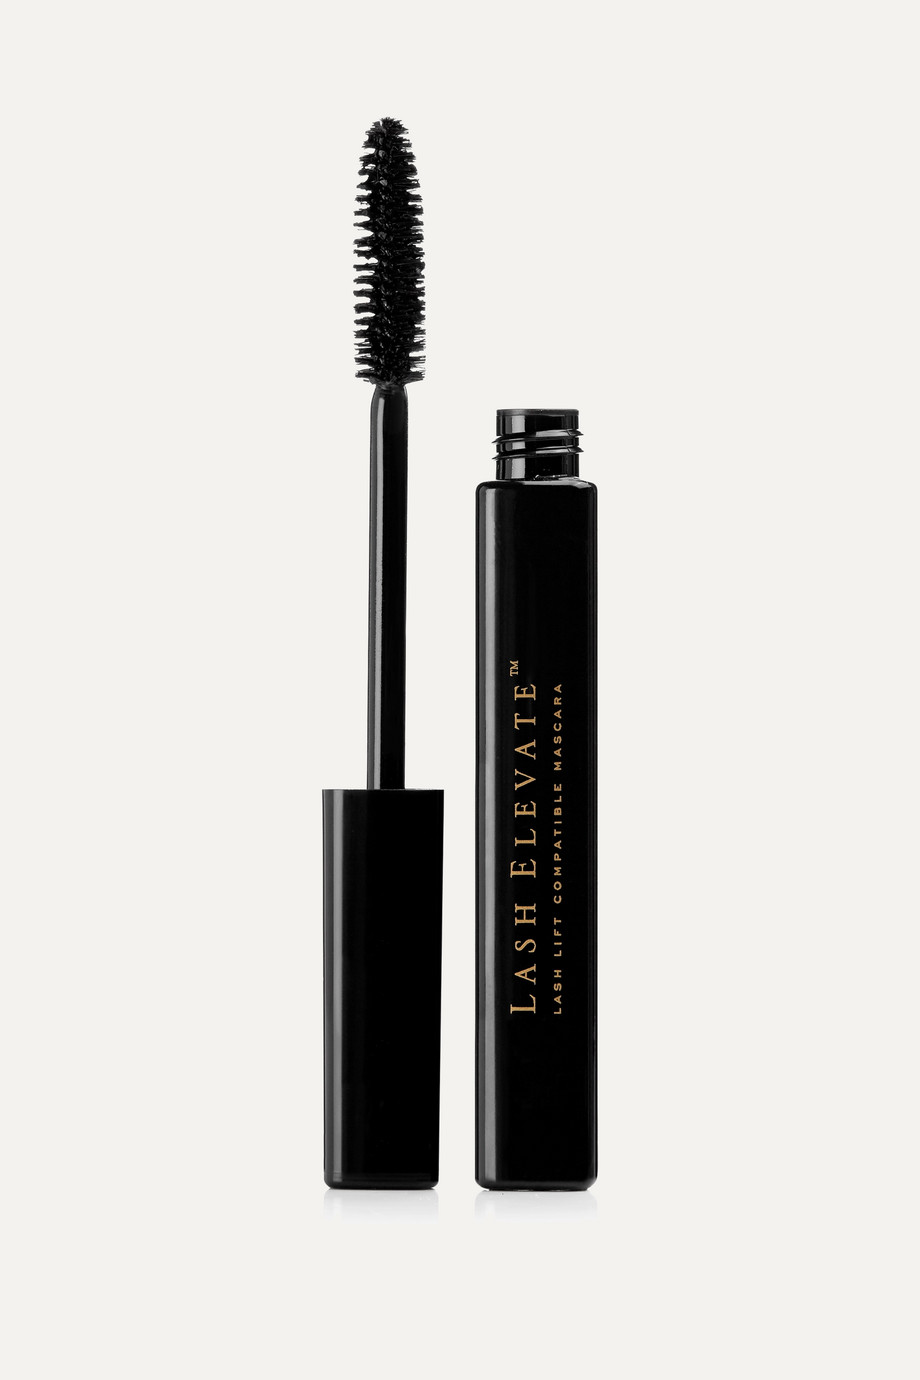 AMY JEAN Brows Lash Elevate Mascara – Mascara